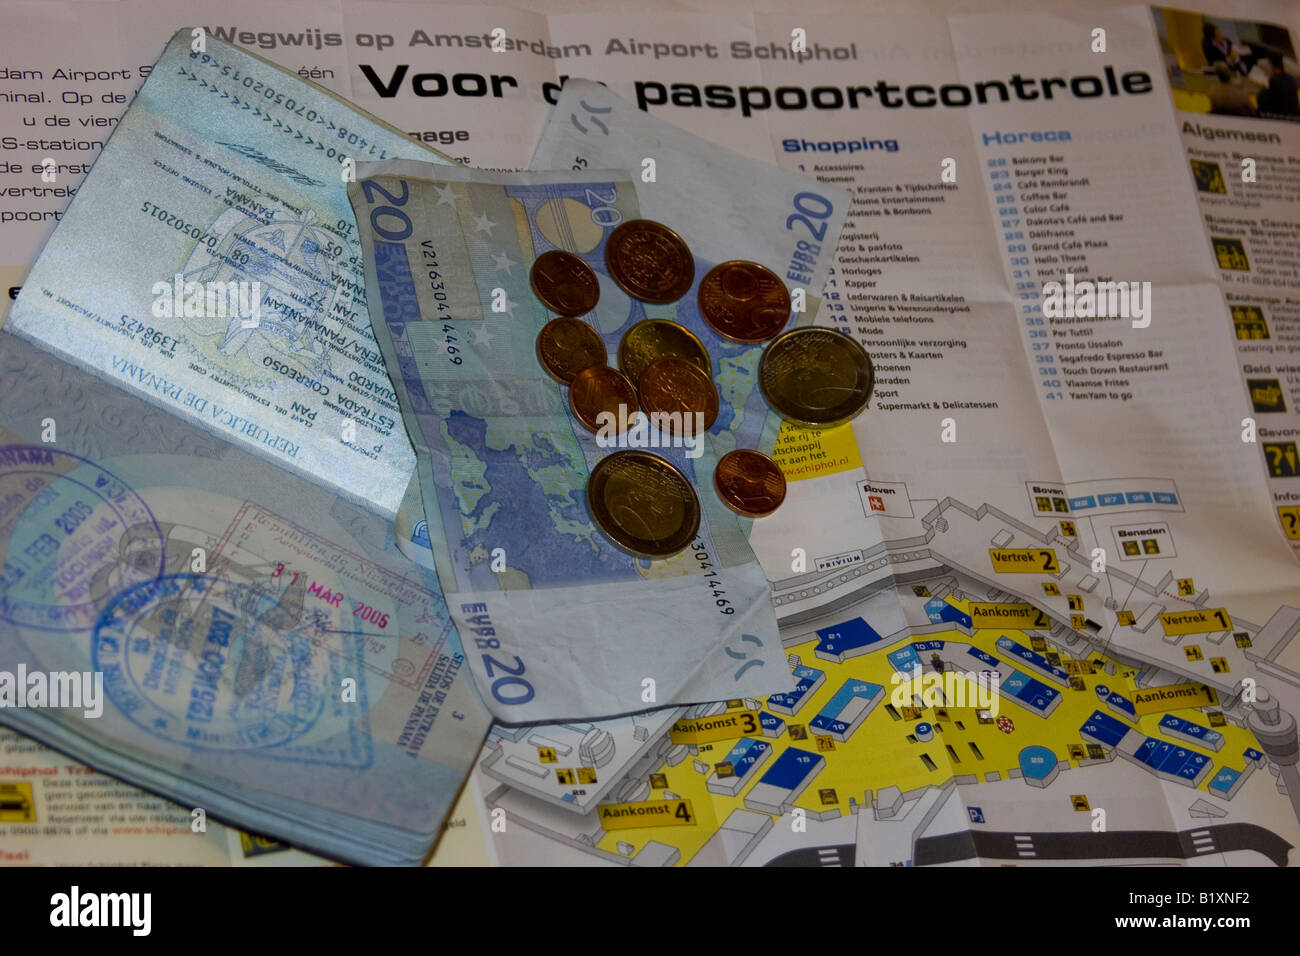 Shiphol Airport Map Trip passport map of the airport of Shiphol and some Euros ready